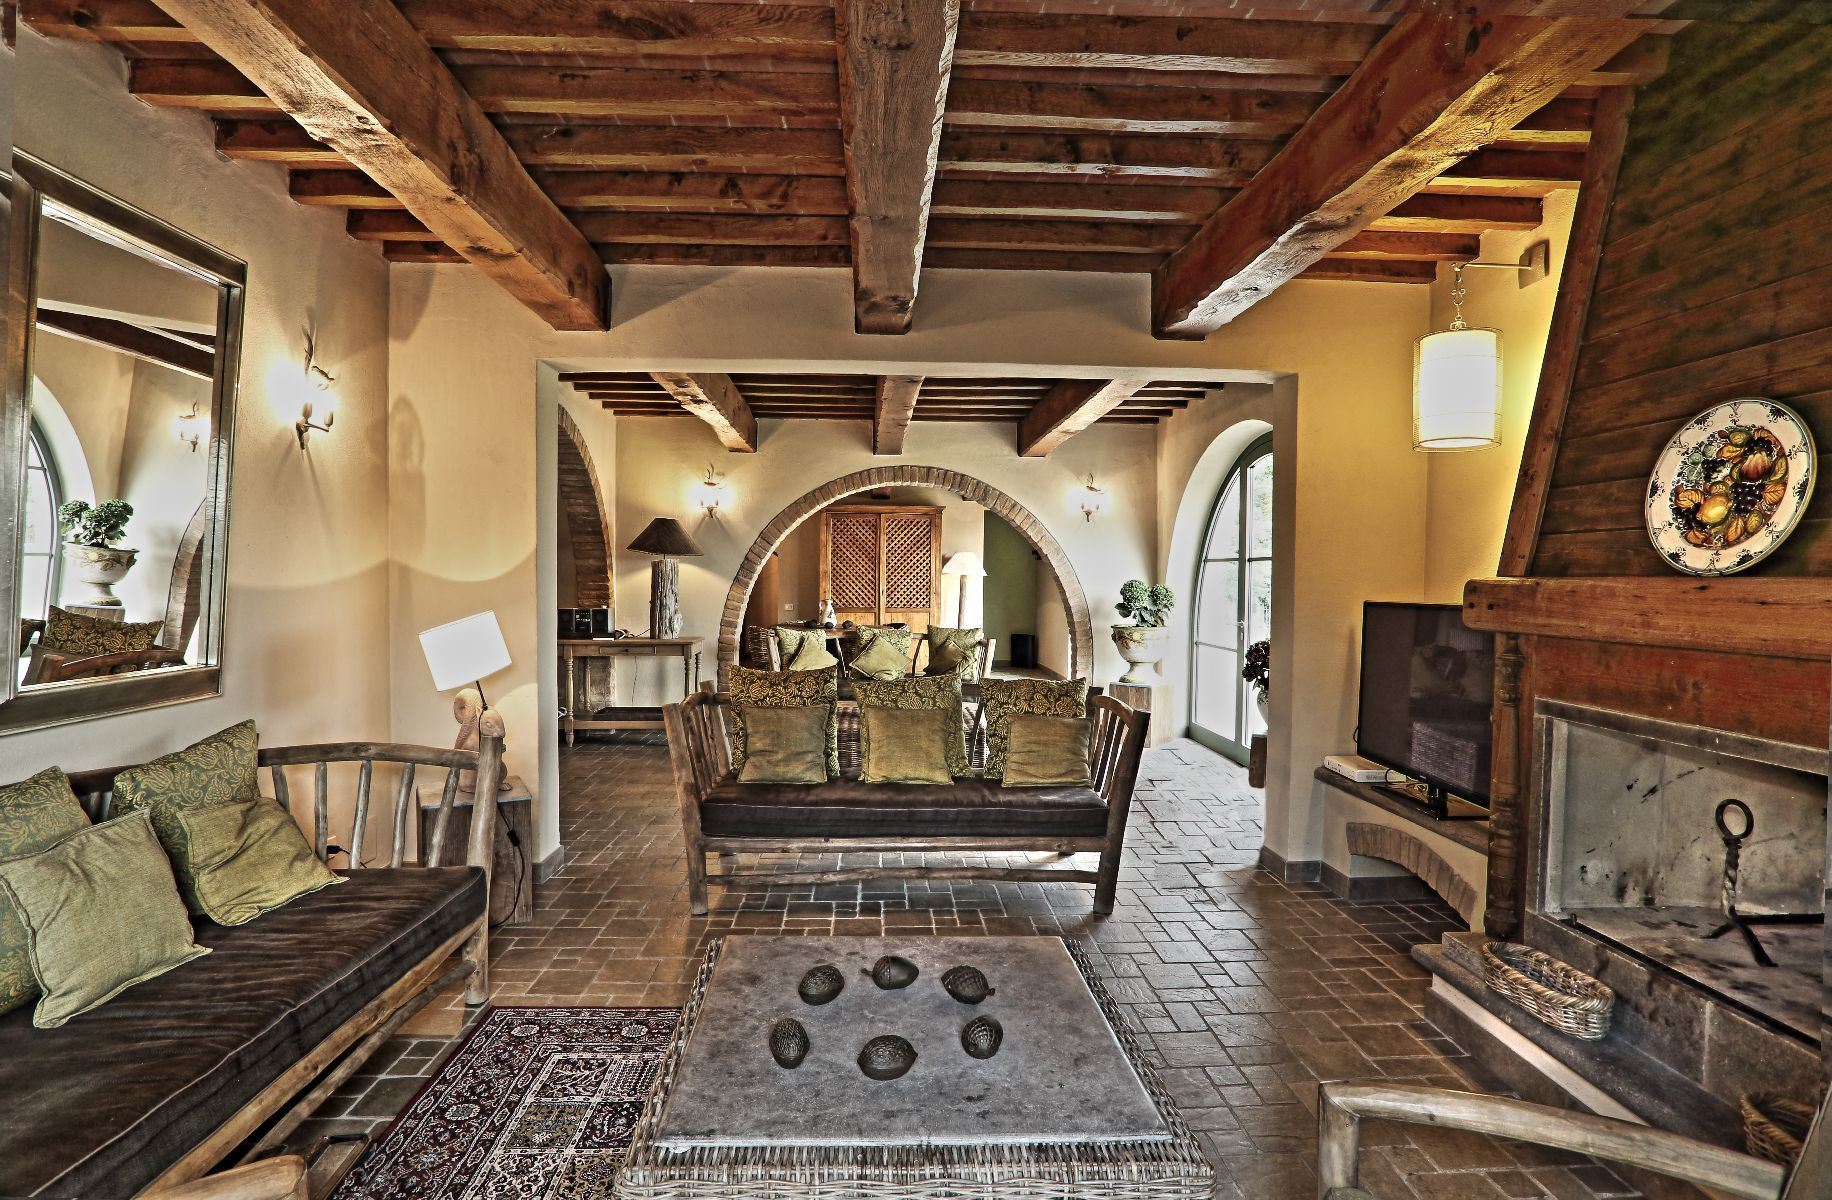 www.casalio.com - Villa Popillo. A fantastic #luxury #Villa #Rental in #Tuscany #Italy in a fantastic position close to #Montaione in, #Italy - #Excellence in #Lodging - Exclusive #Luxury #Villas & #Chalets in #Italy and worldwide. (Pinned by #Casalio - www.casalio.com ). Check our travel blog www.casaliotravel.com